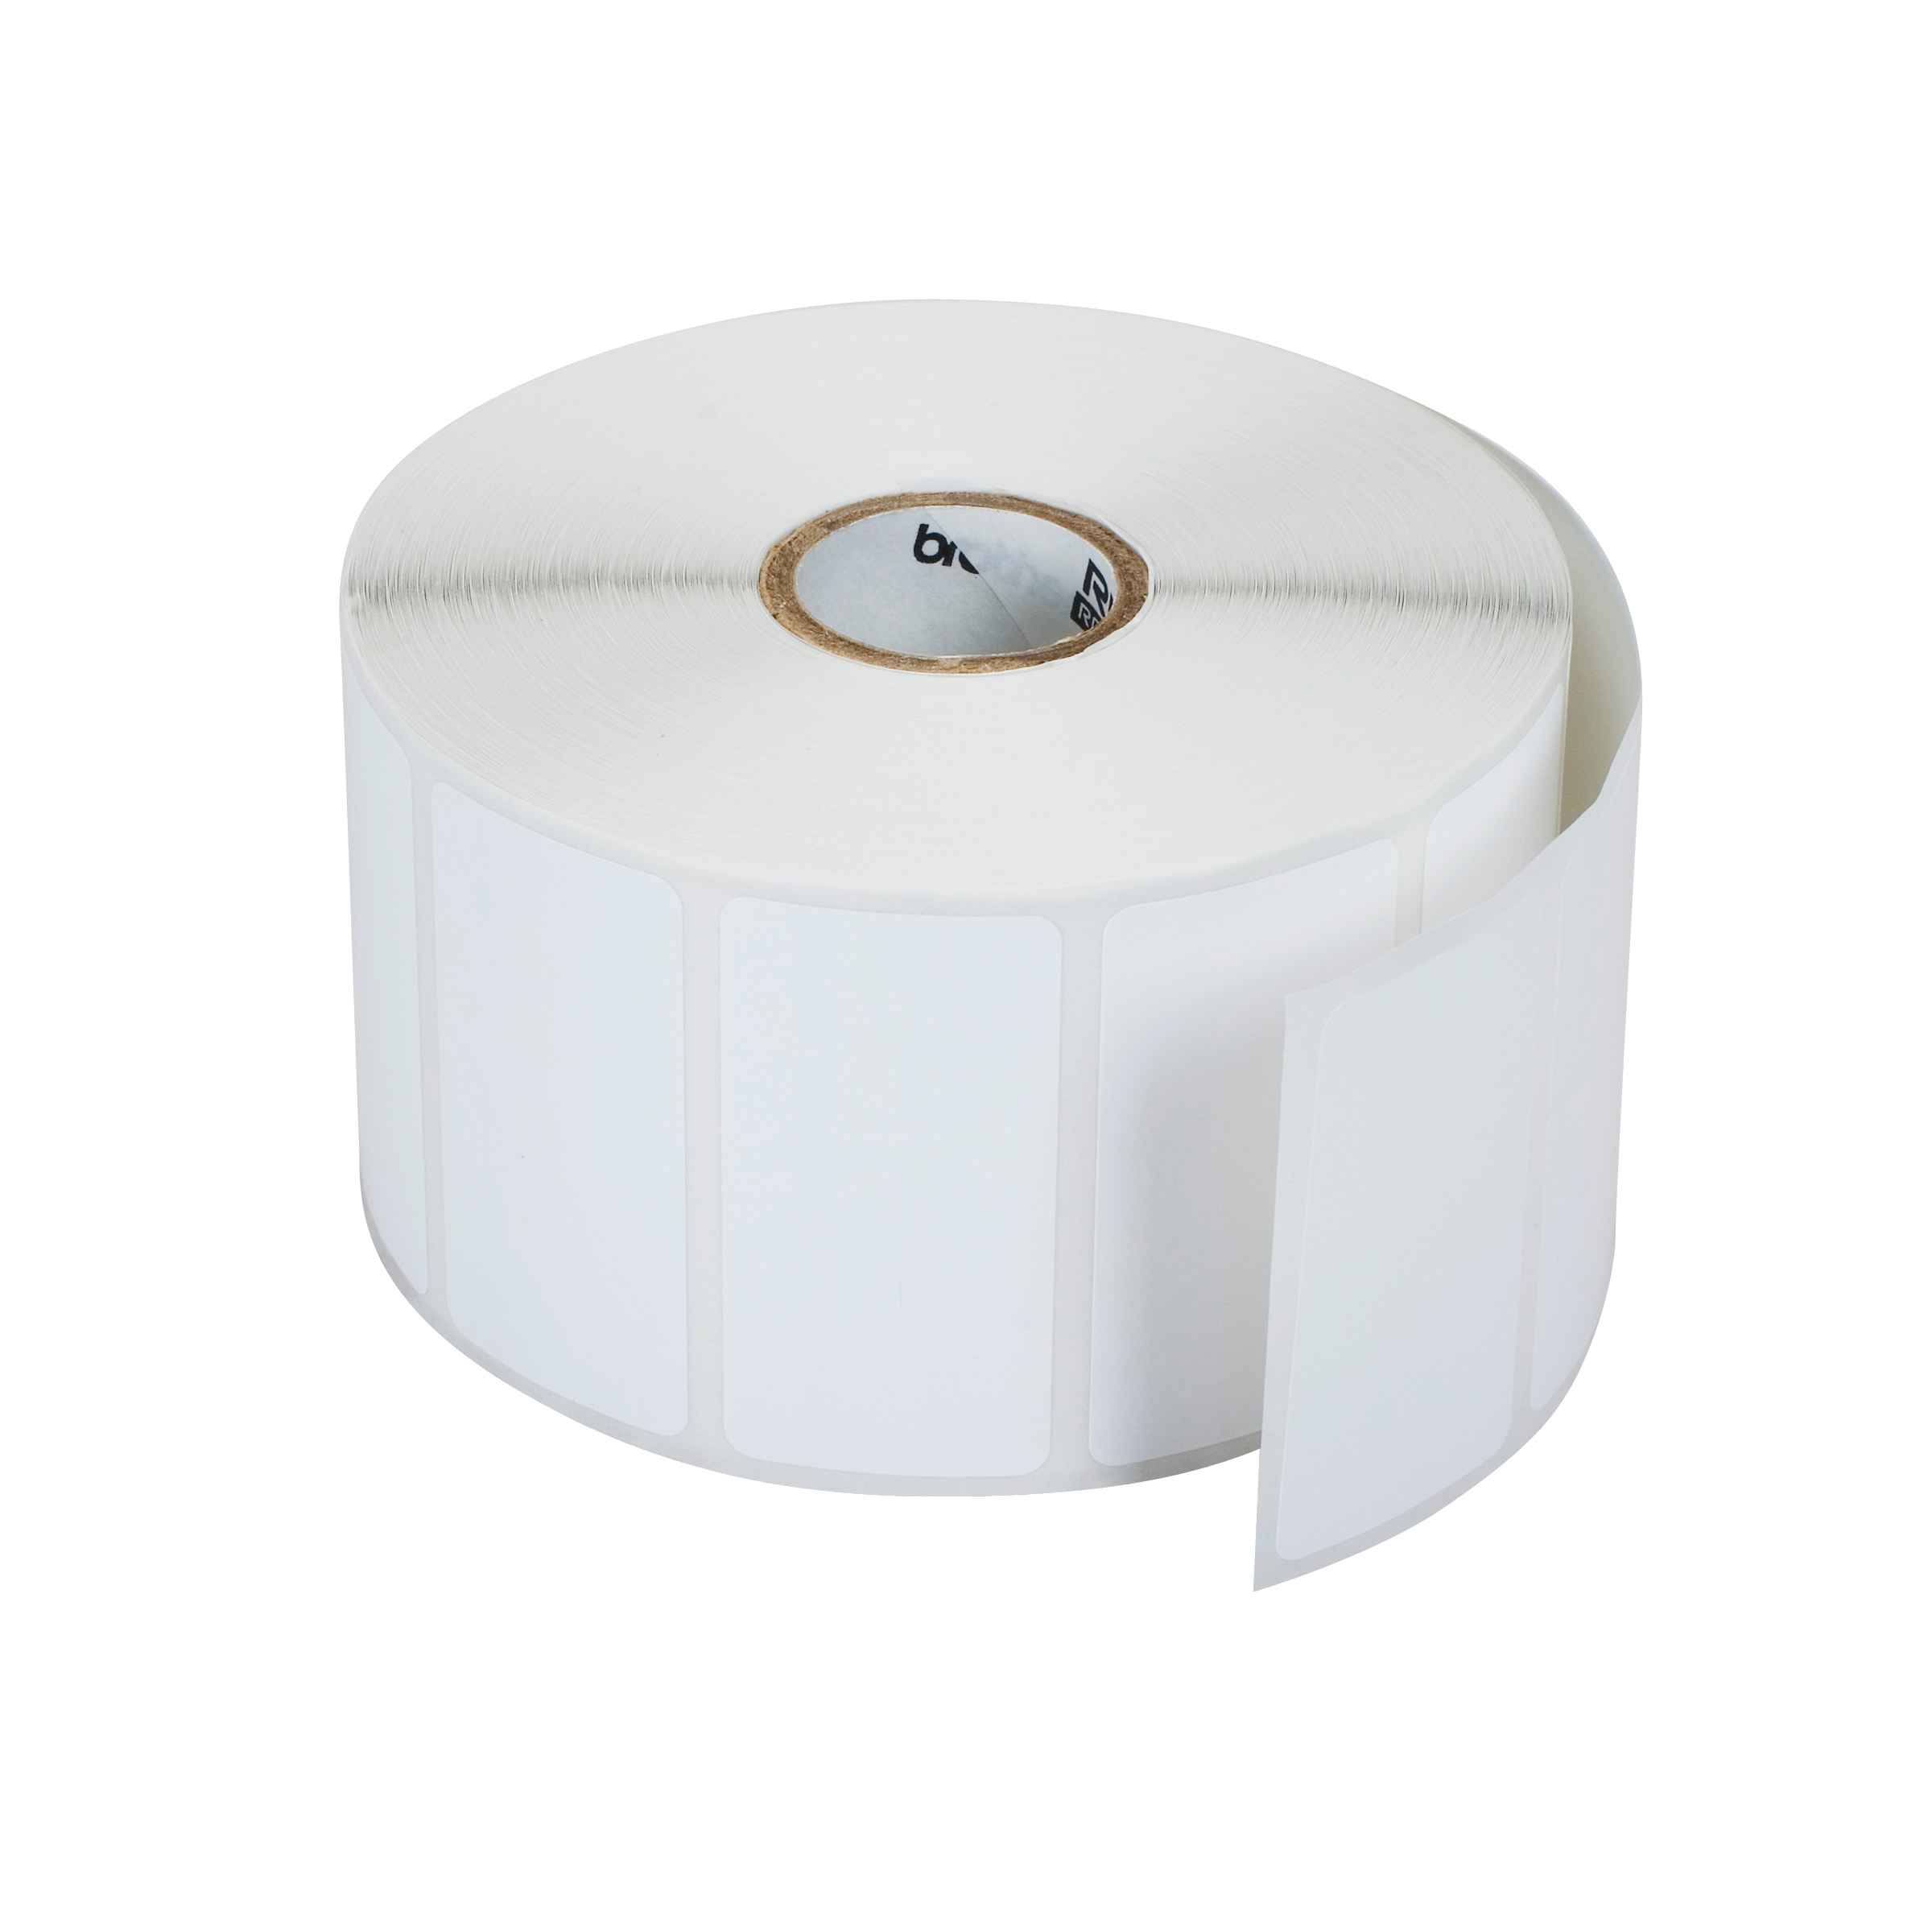 RD-SO5U1-2x1 - label roll